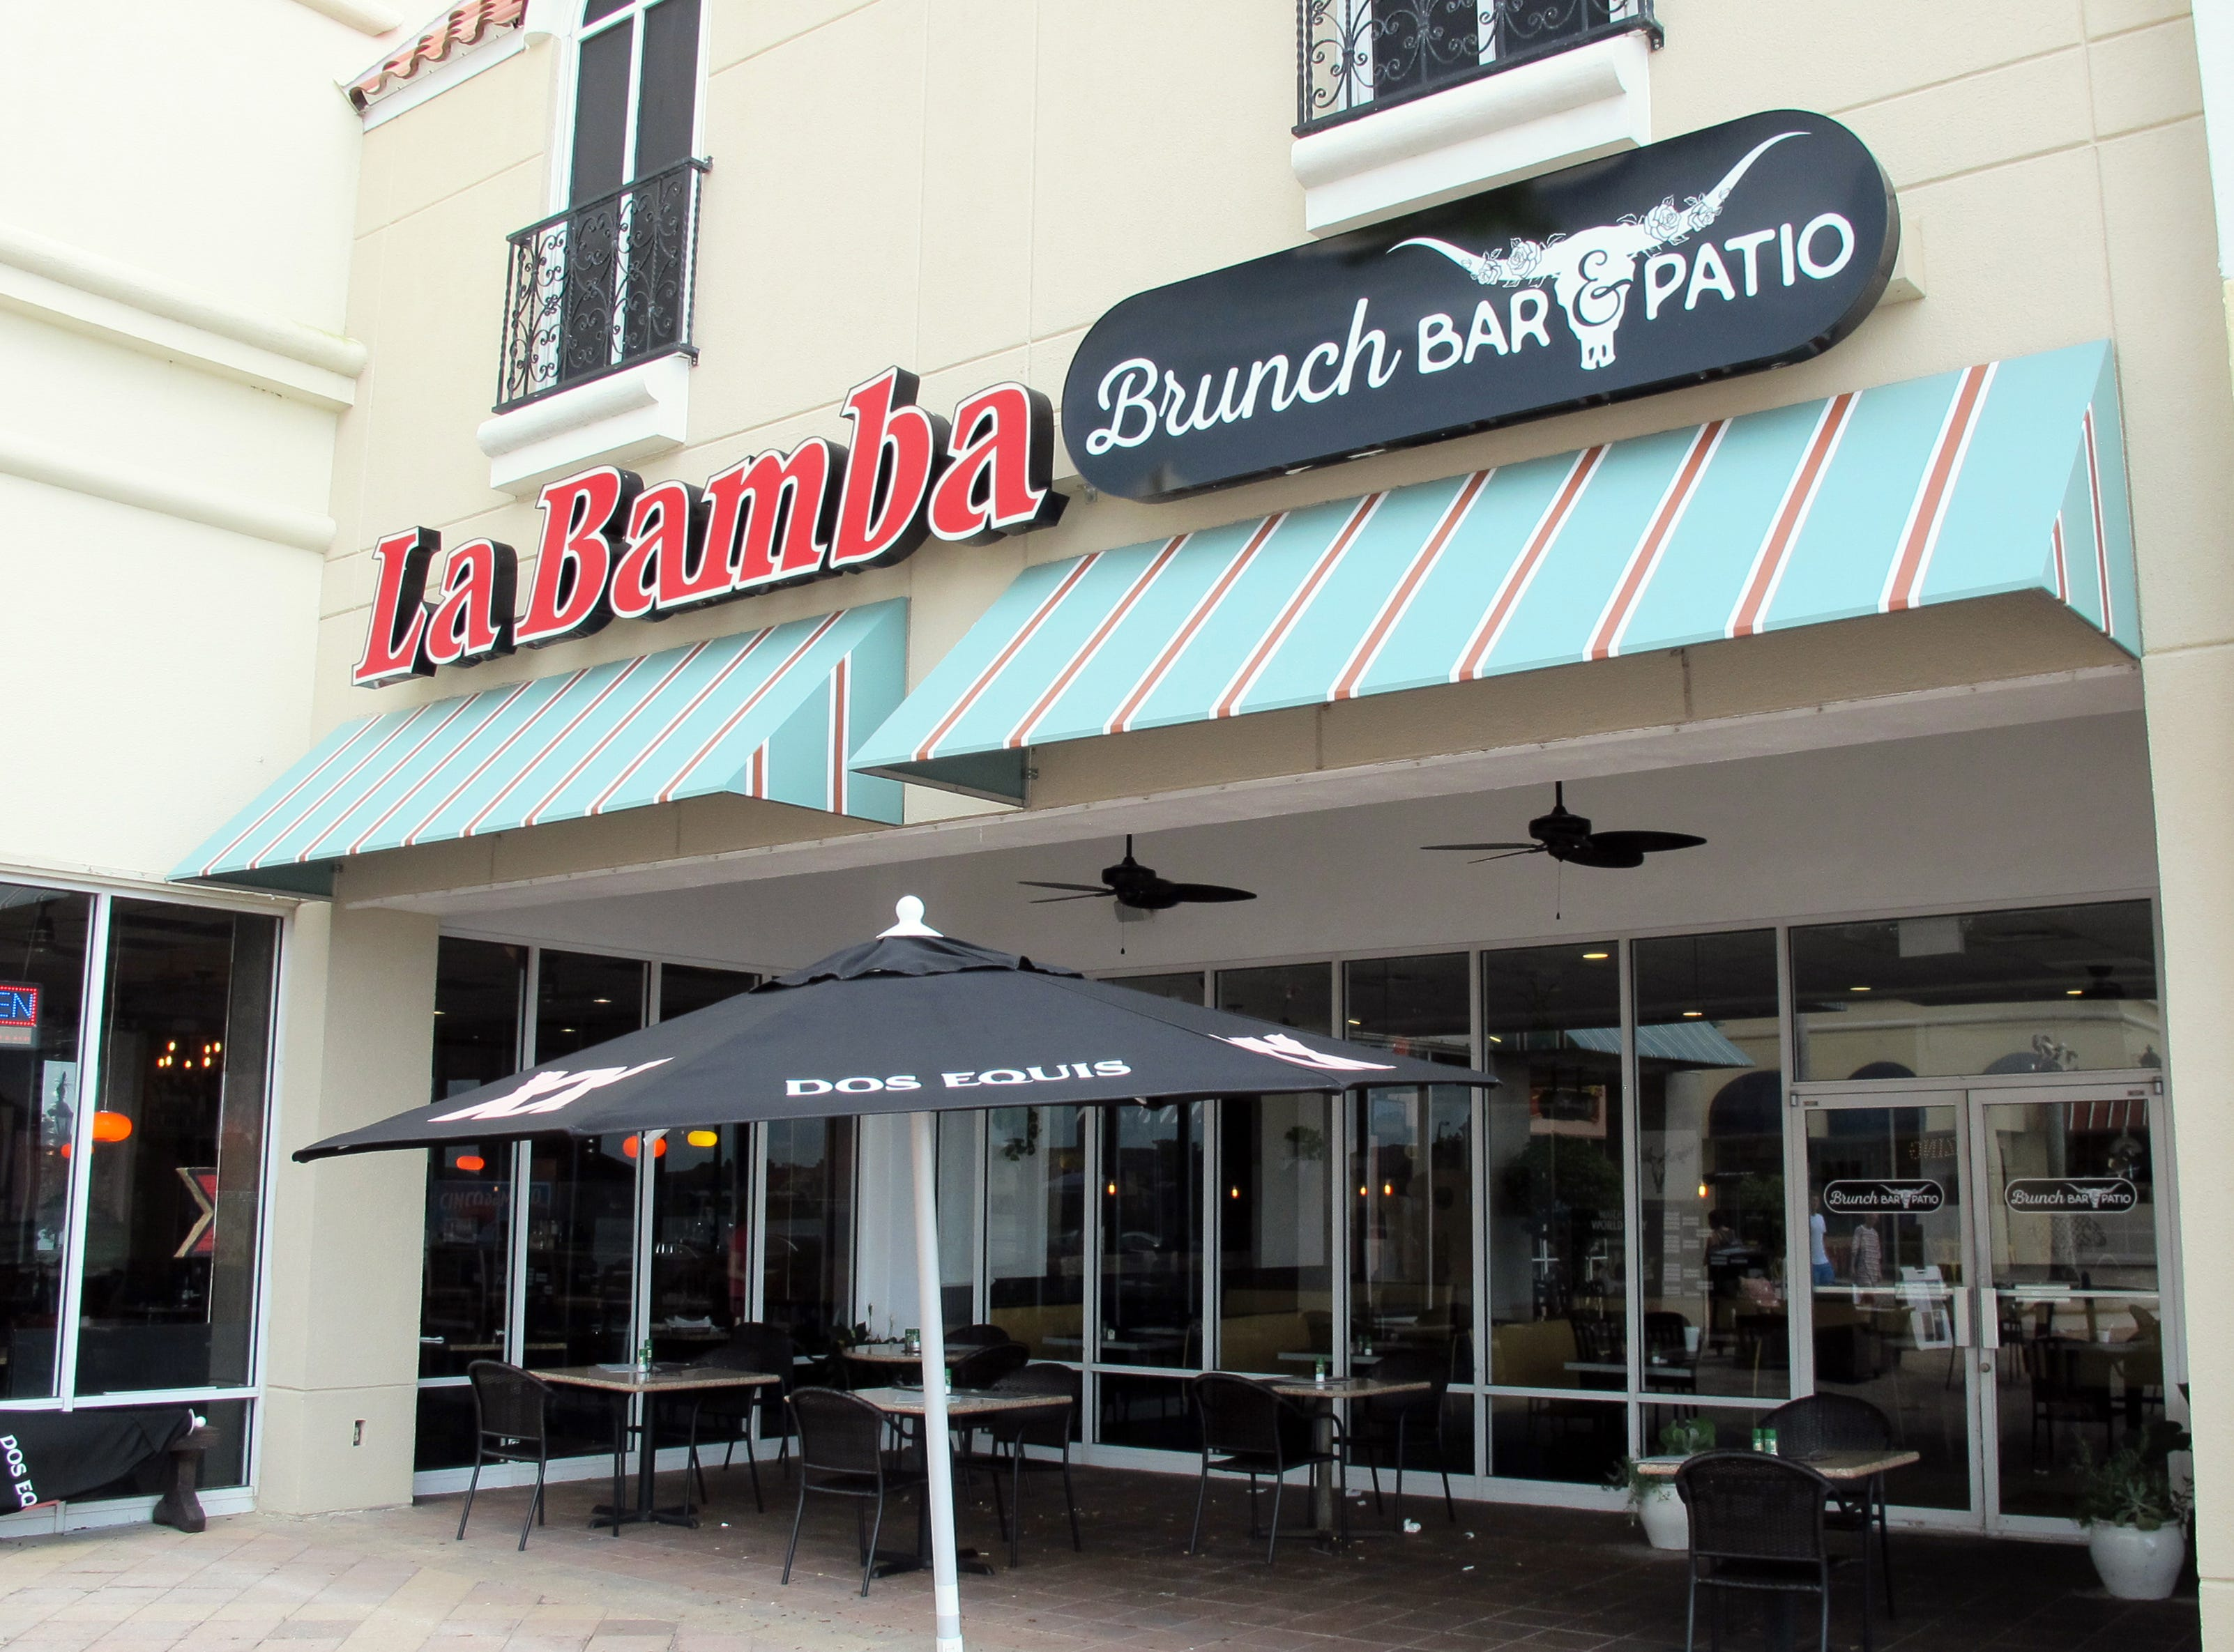 La Bamba Brunch Bar & Patio launched in February 2018 at Miromar Outlets in Estero adjacent to the longtime La Bamba Tequila Bar & Restaurant in the regional outlet mall's restaurant piazza.